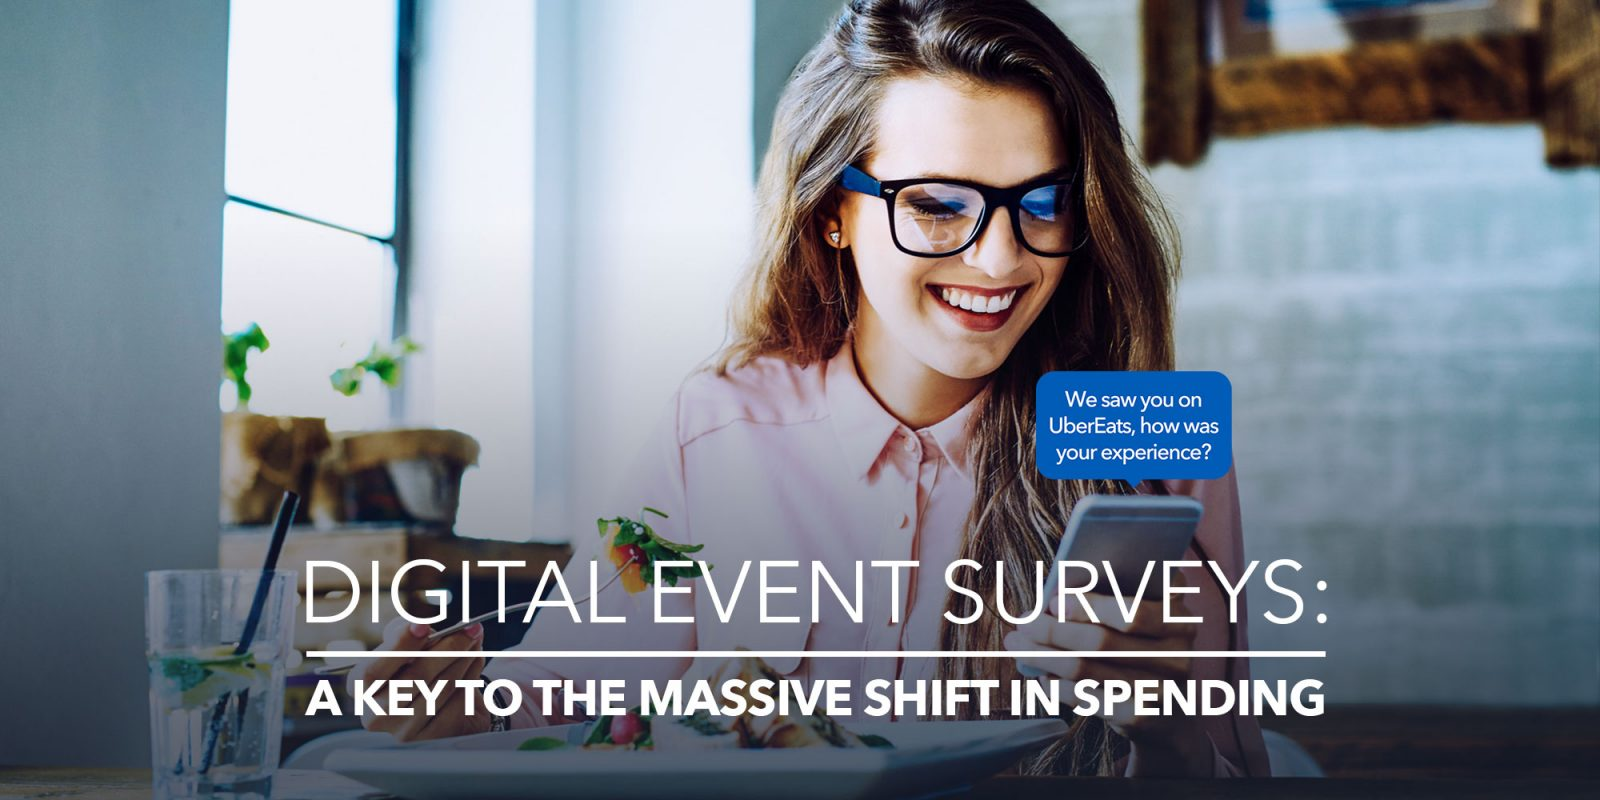 Digital event surveys: a key to the massive shift in spending.